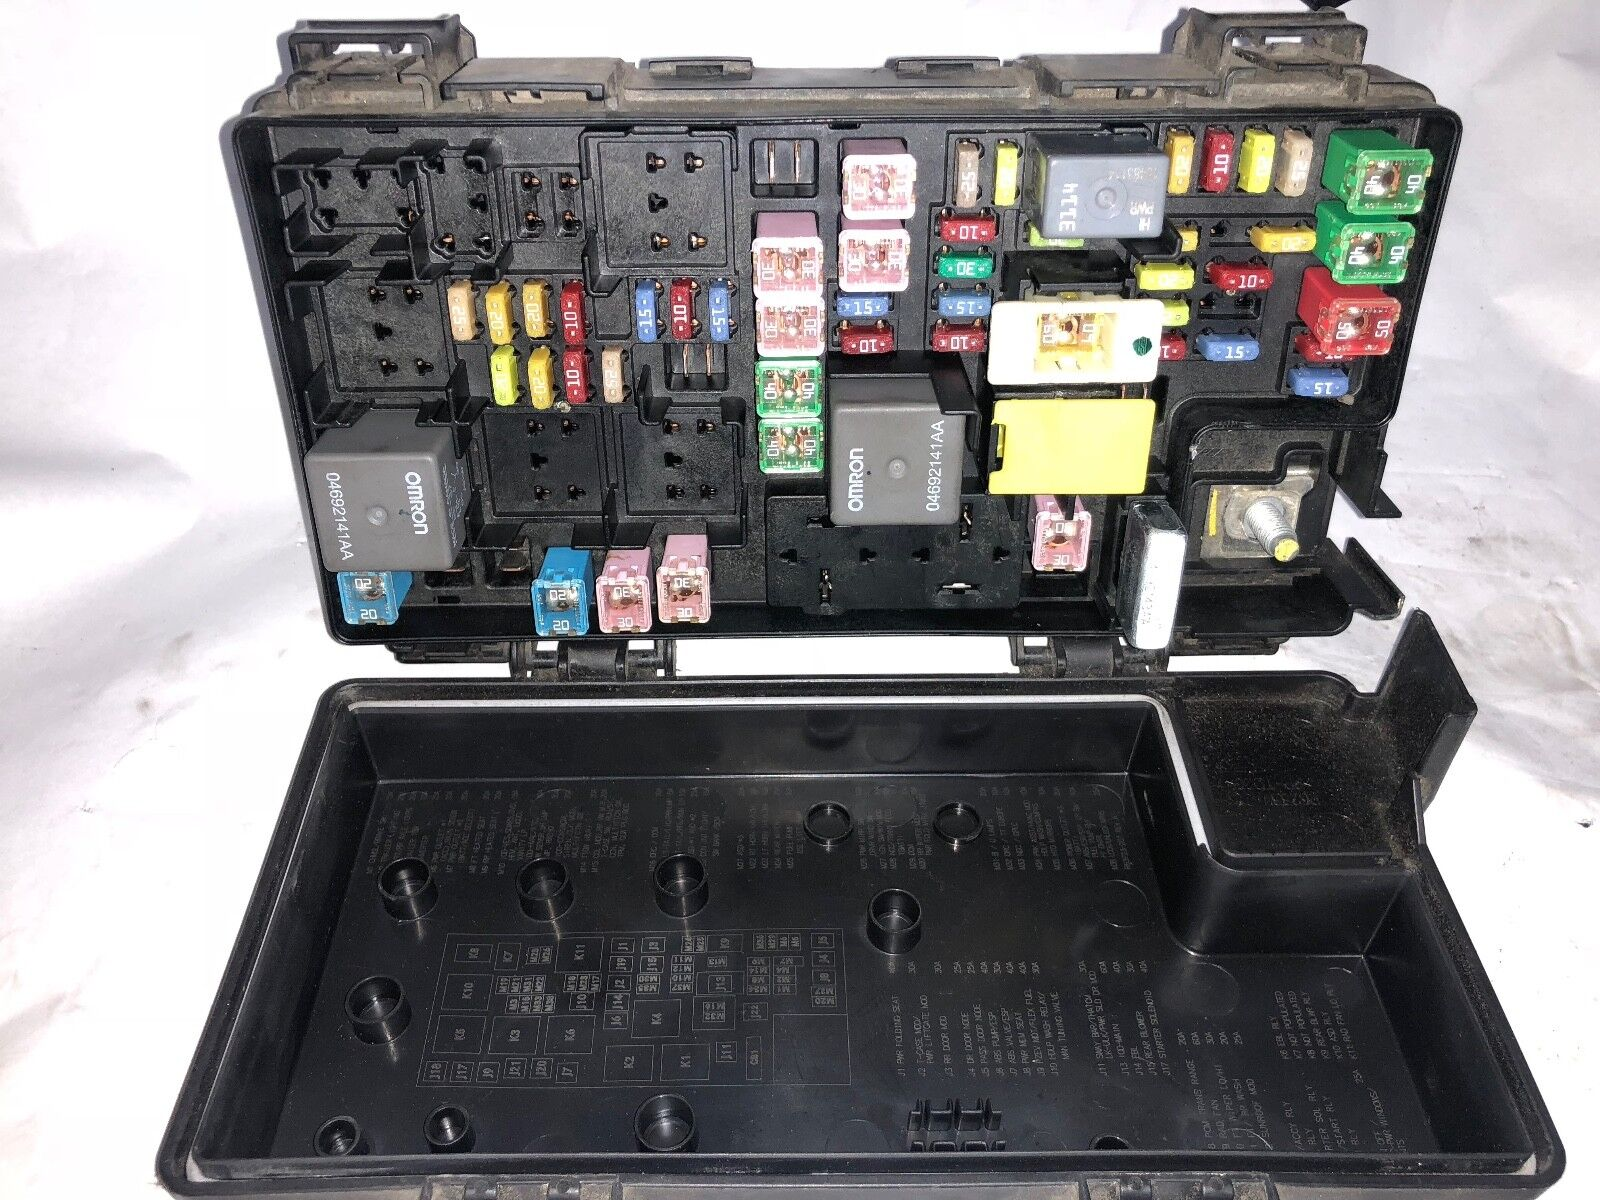 Used 2002 Dodge Grand Caravan Switches And Controls For Sale 2005 Fuse Box 2009 Relay